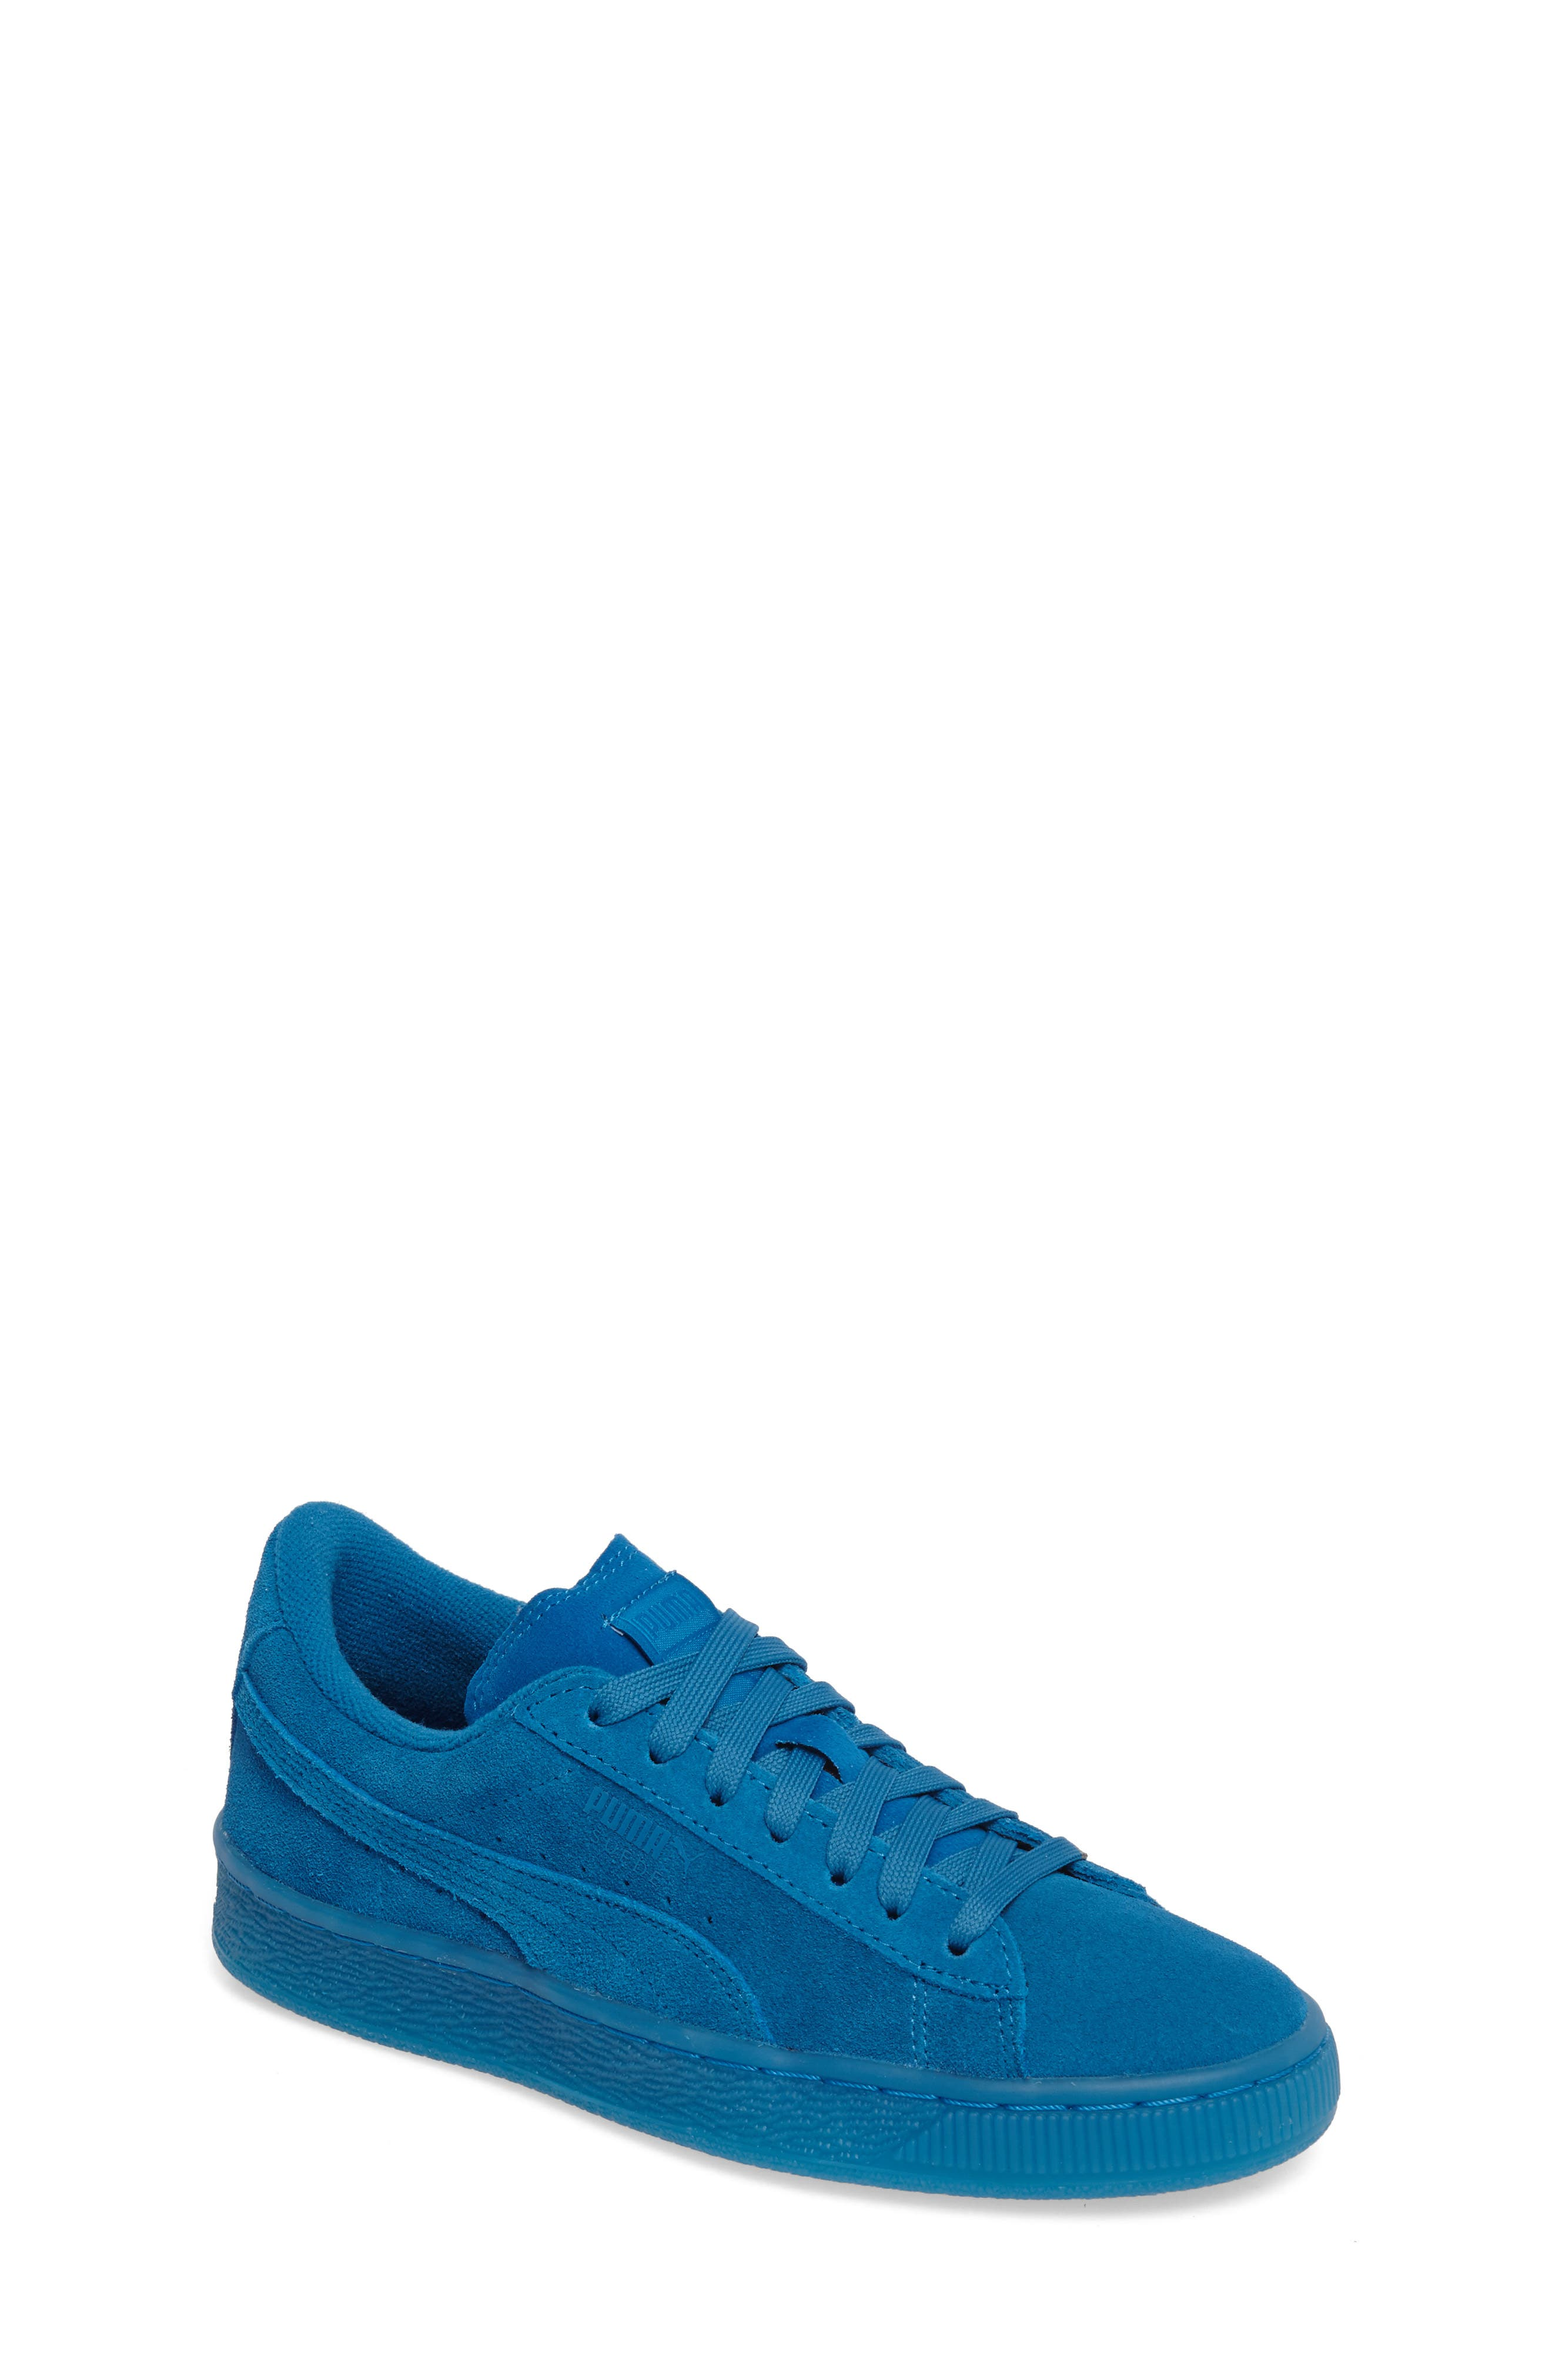 'Suede Iced' Sneaker,                         Main,                         color, 460